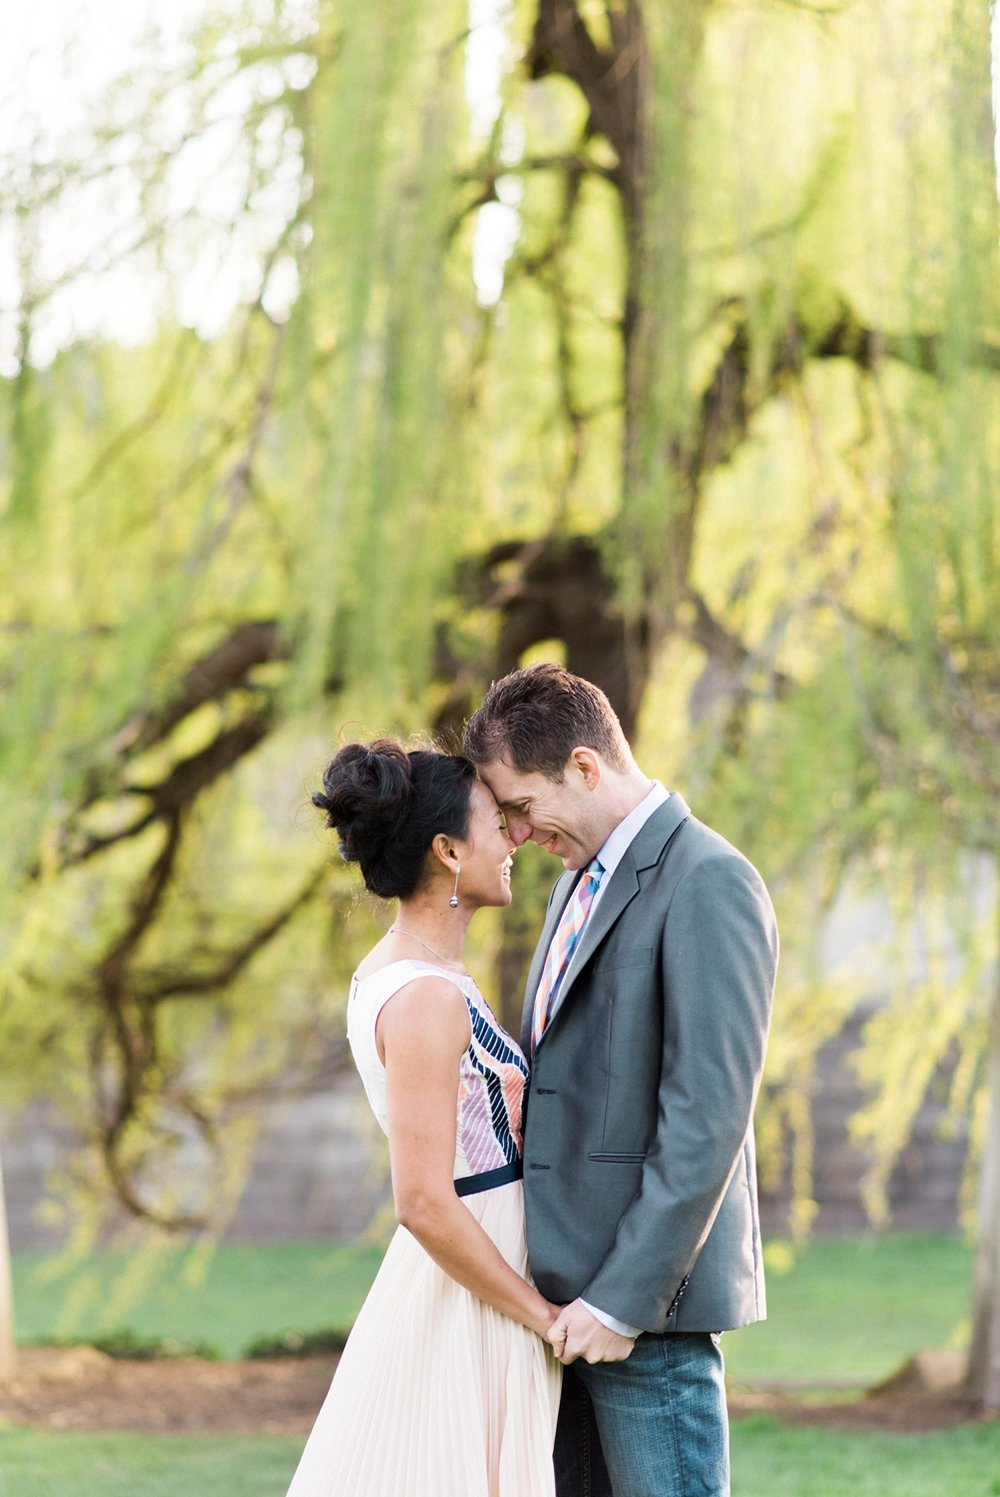 portland-waterfront-engagement-cherry-blossom-cathedral-park-sokhorn-jay-225_cr.jpg